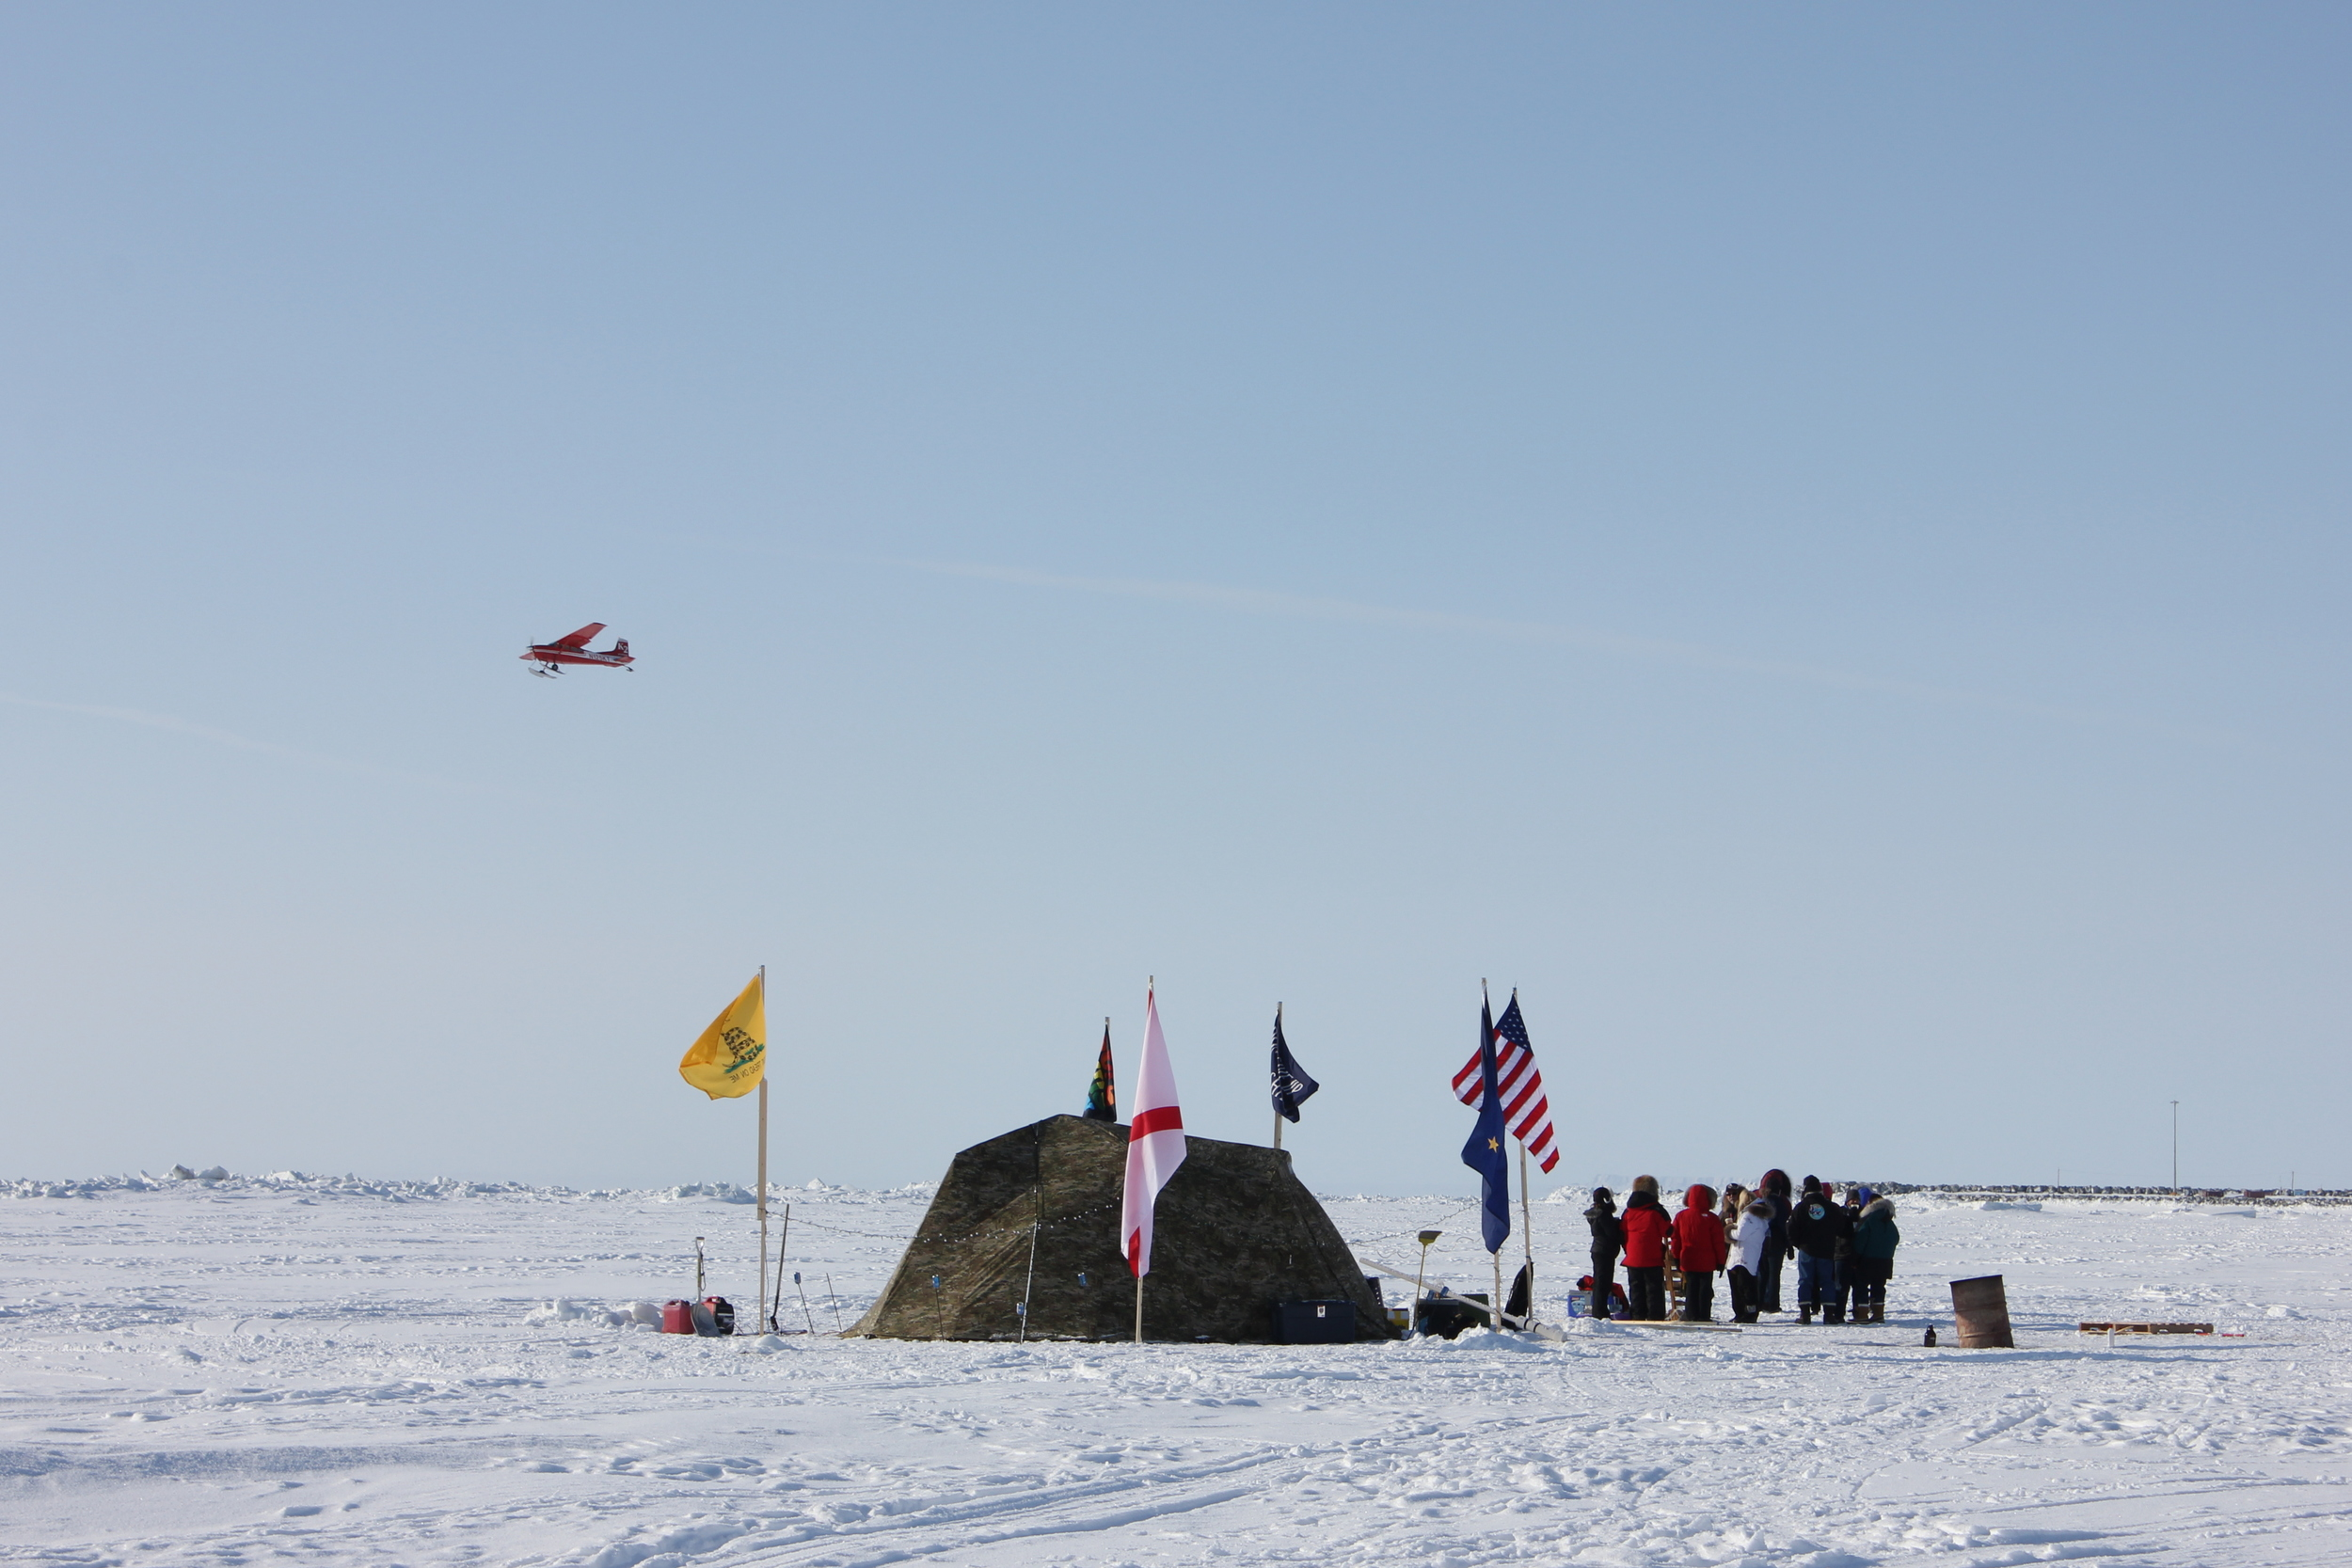 Fest-goers congregated near an under-the-ice mining tent.